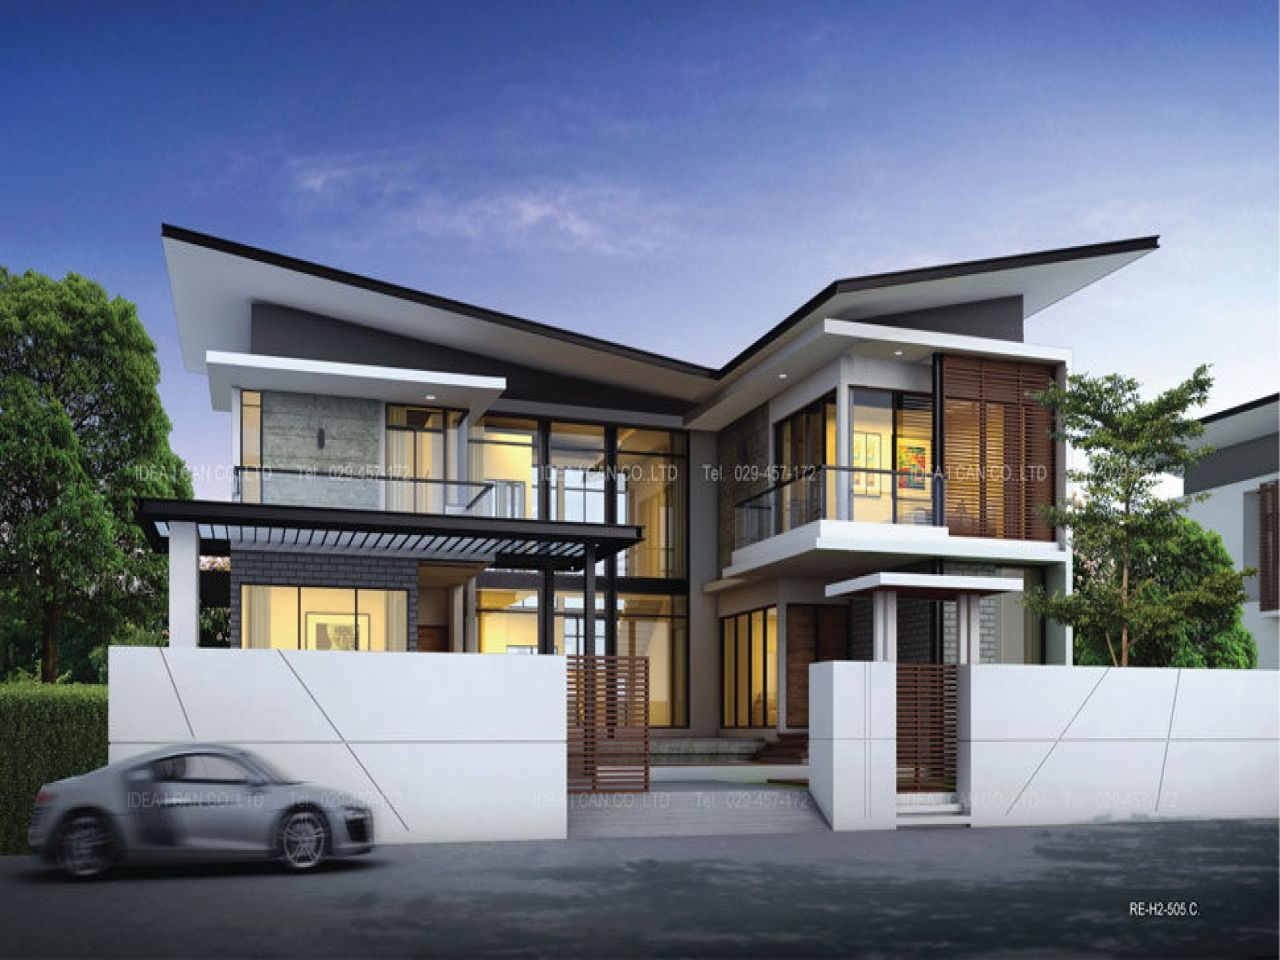 bc46dab13512382087b9a569a8116ae1 - 28+ Small Two Story Modern House Exterior Design Images